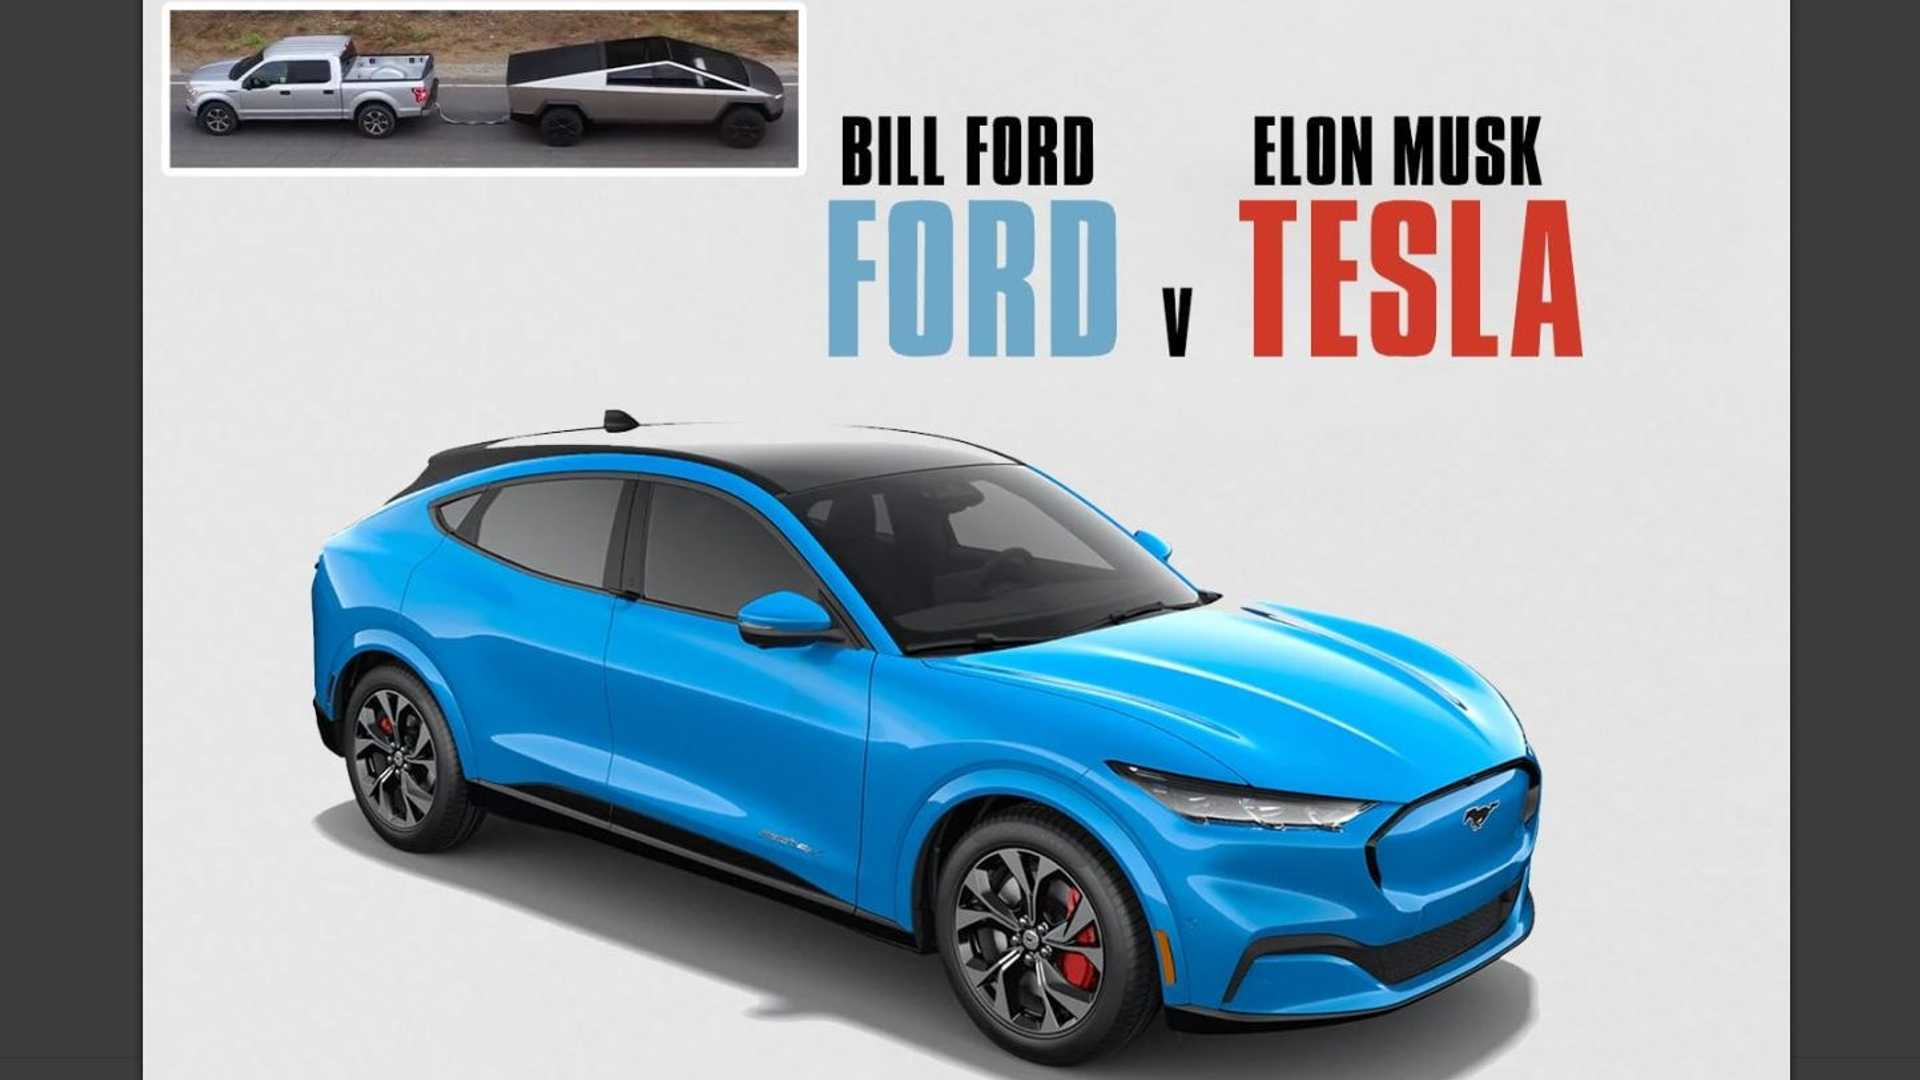 Ford Vs Tesla: The Movie We're All Eager To See